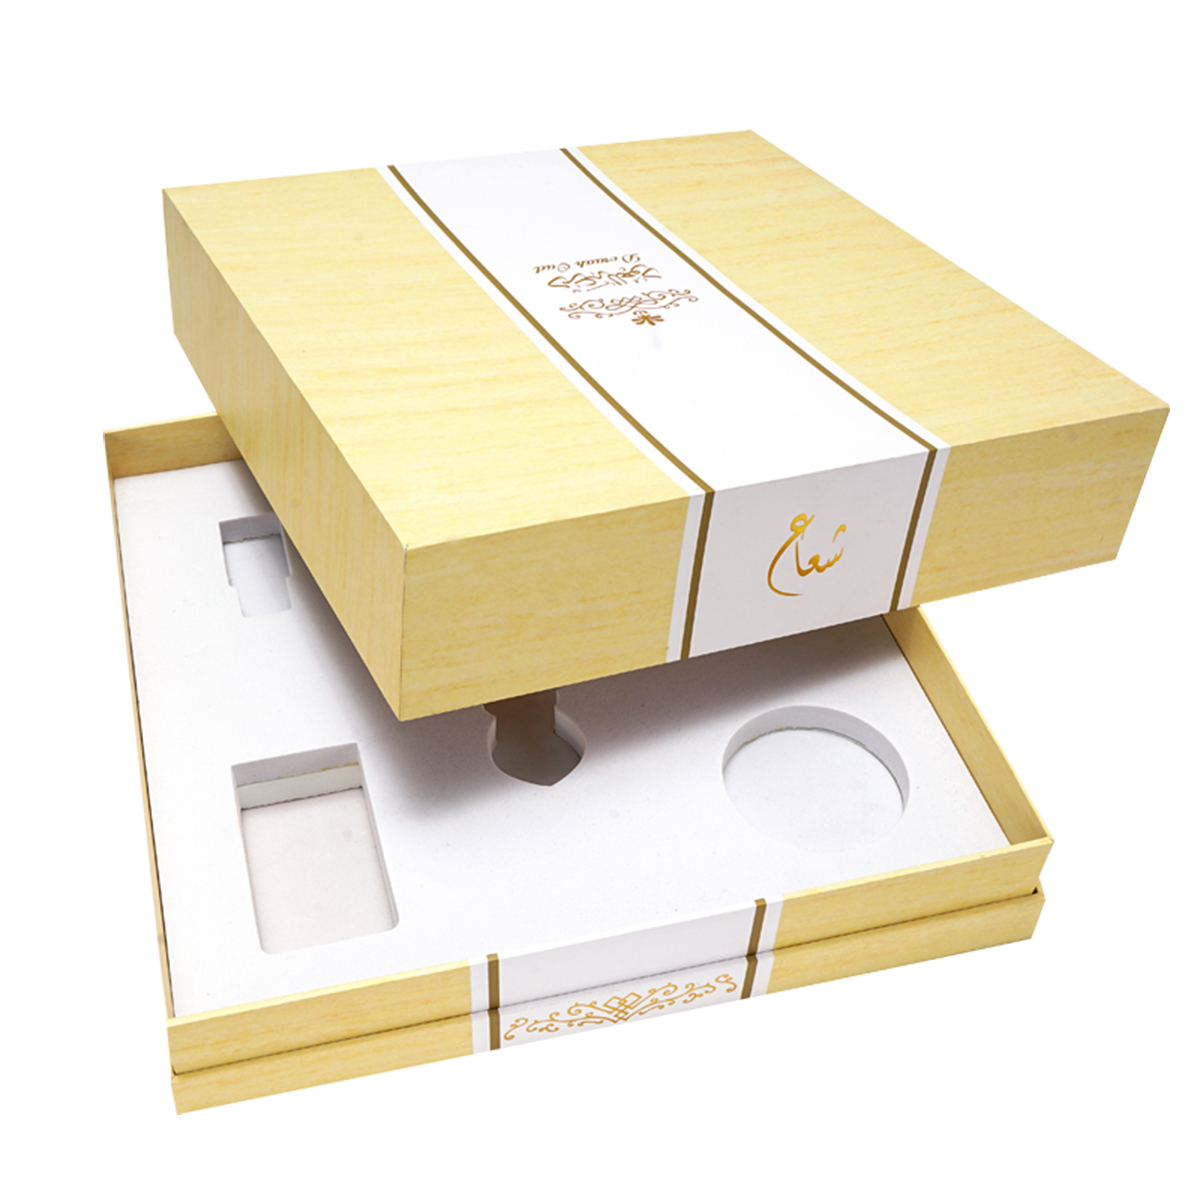 Yello White Lid And Based Set Box